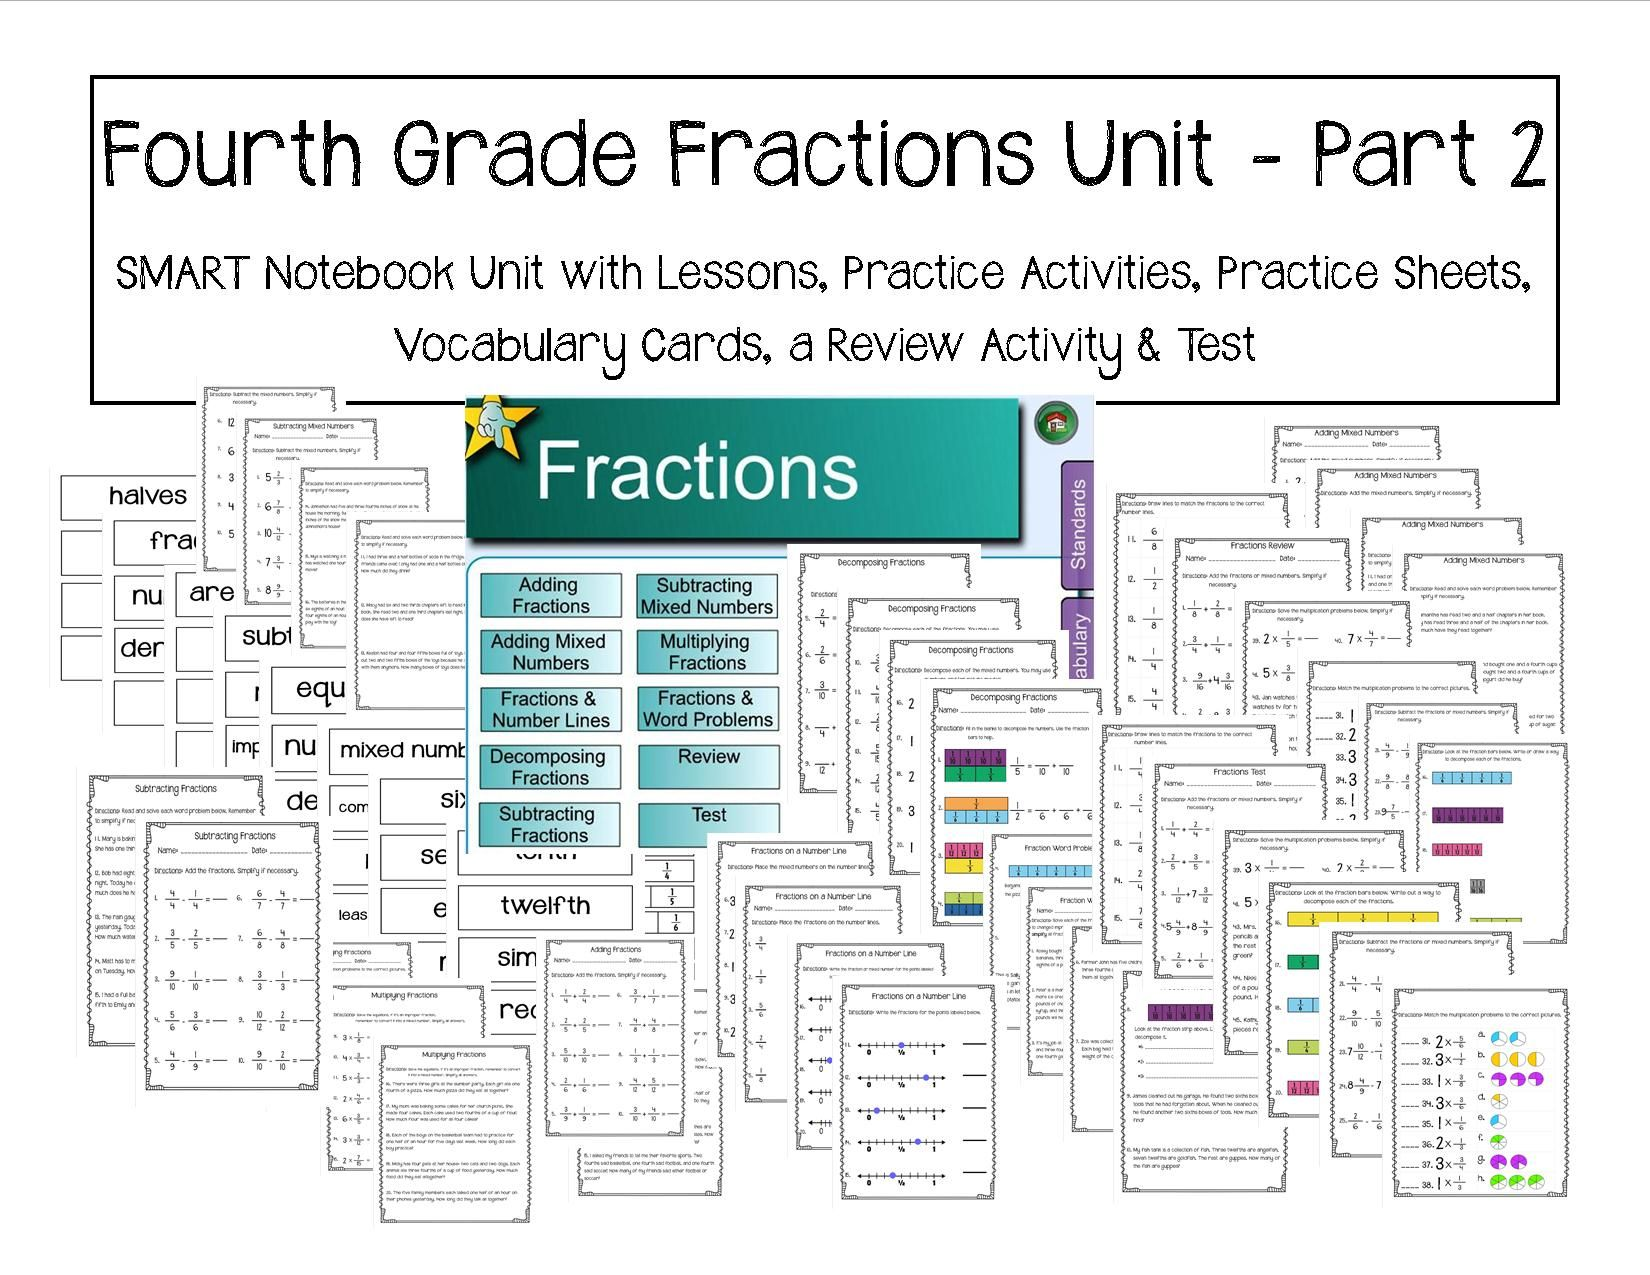 Fourth Grade Fractions Unit - Part 2 | Worksheets, Math and Math ...